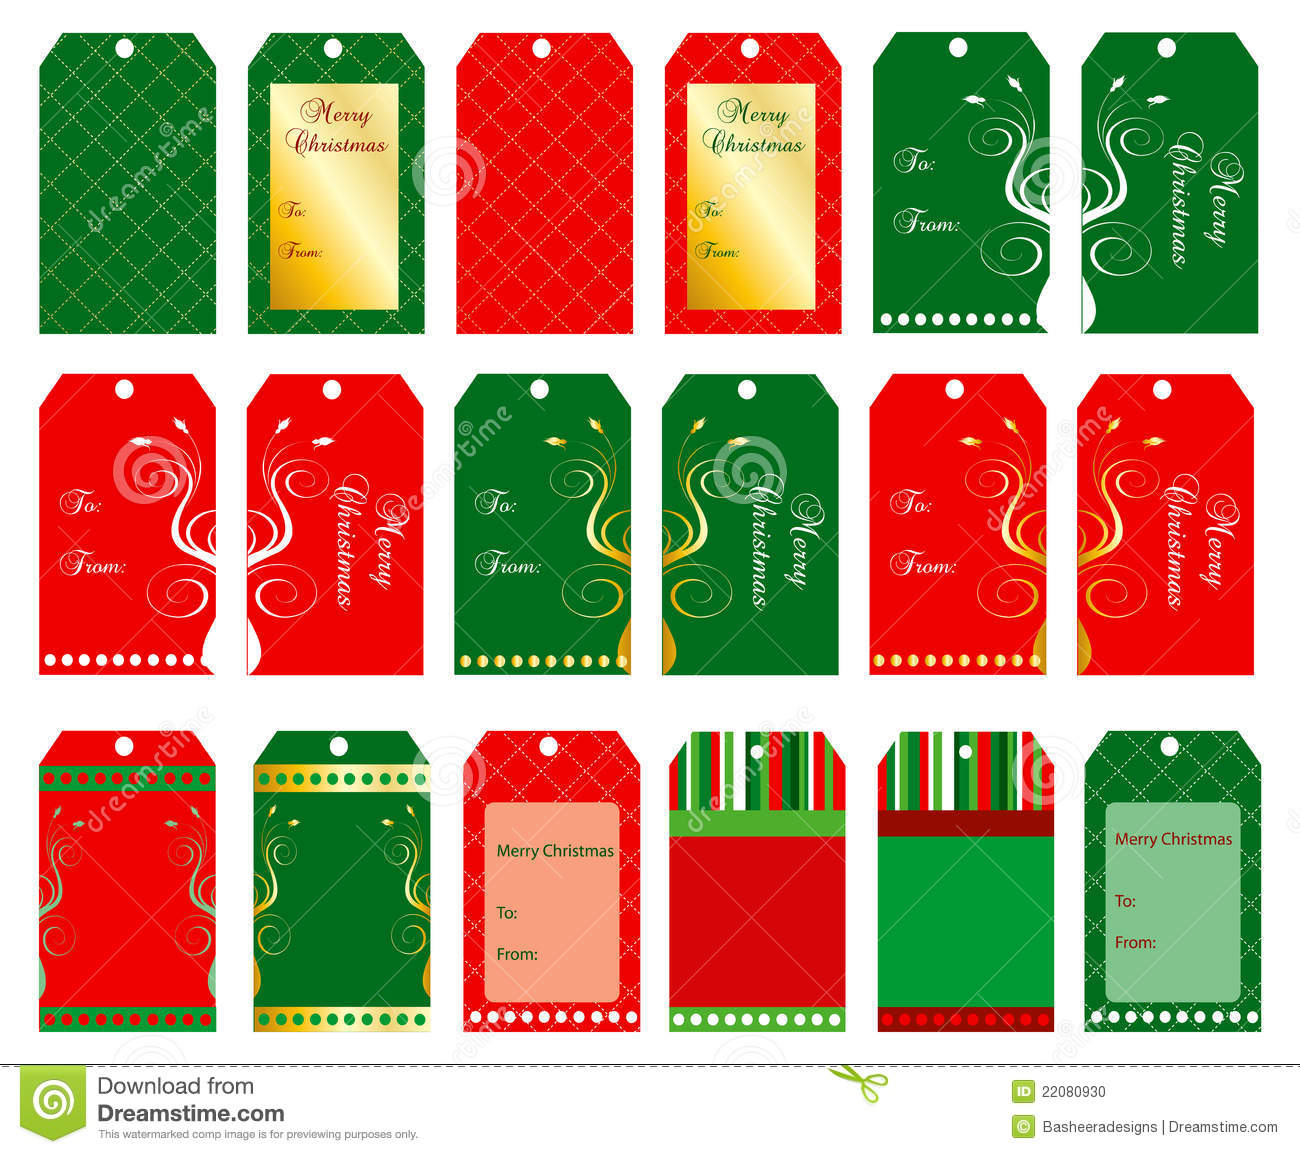 Vector Illustration of 18 Christmas tags or cards.